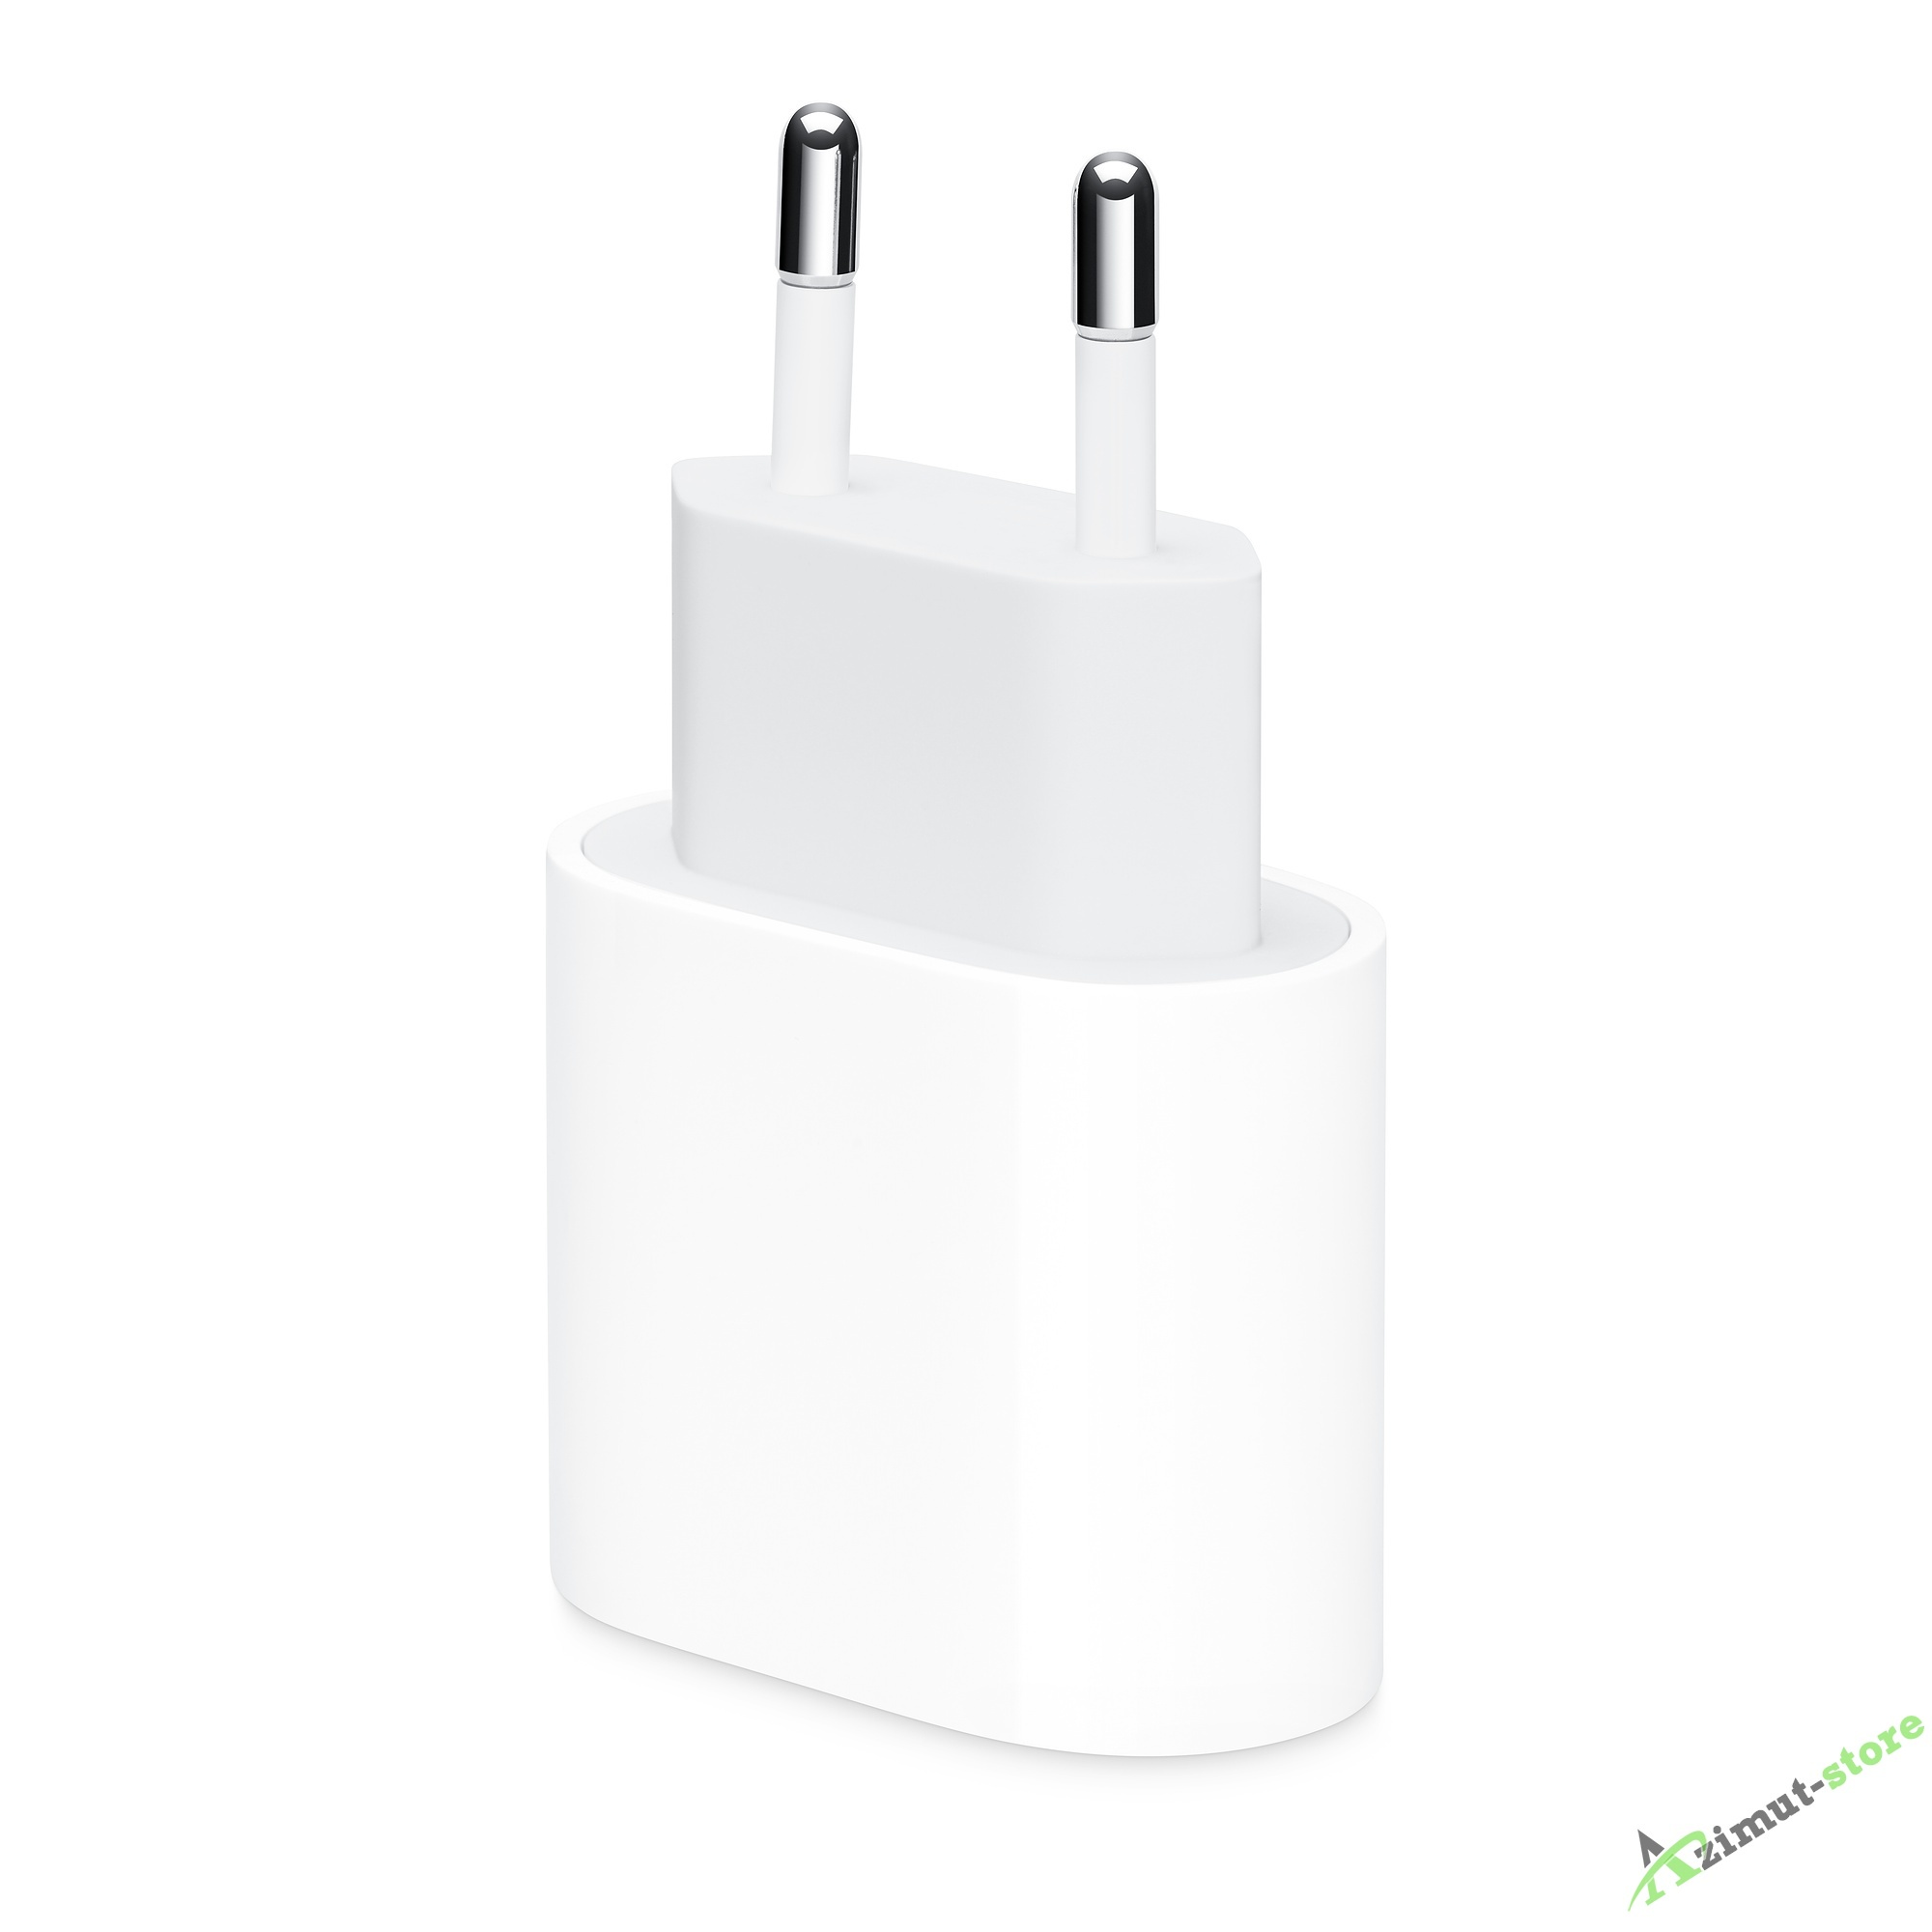 Apple USB Type-C Power Adapter 20W MHJE3ZM/A